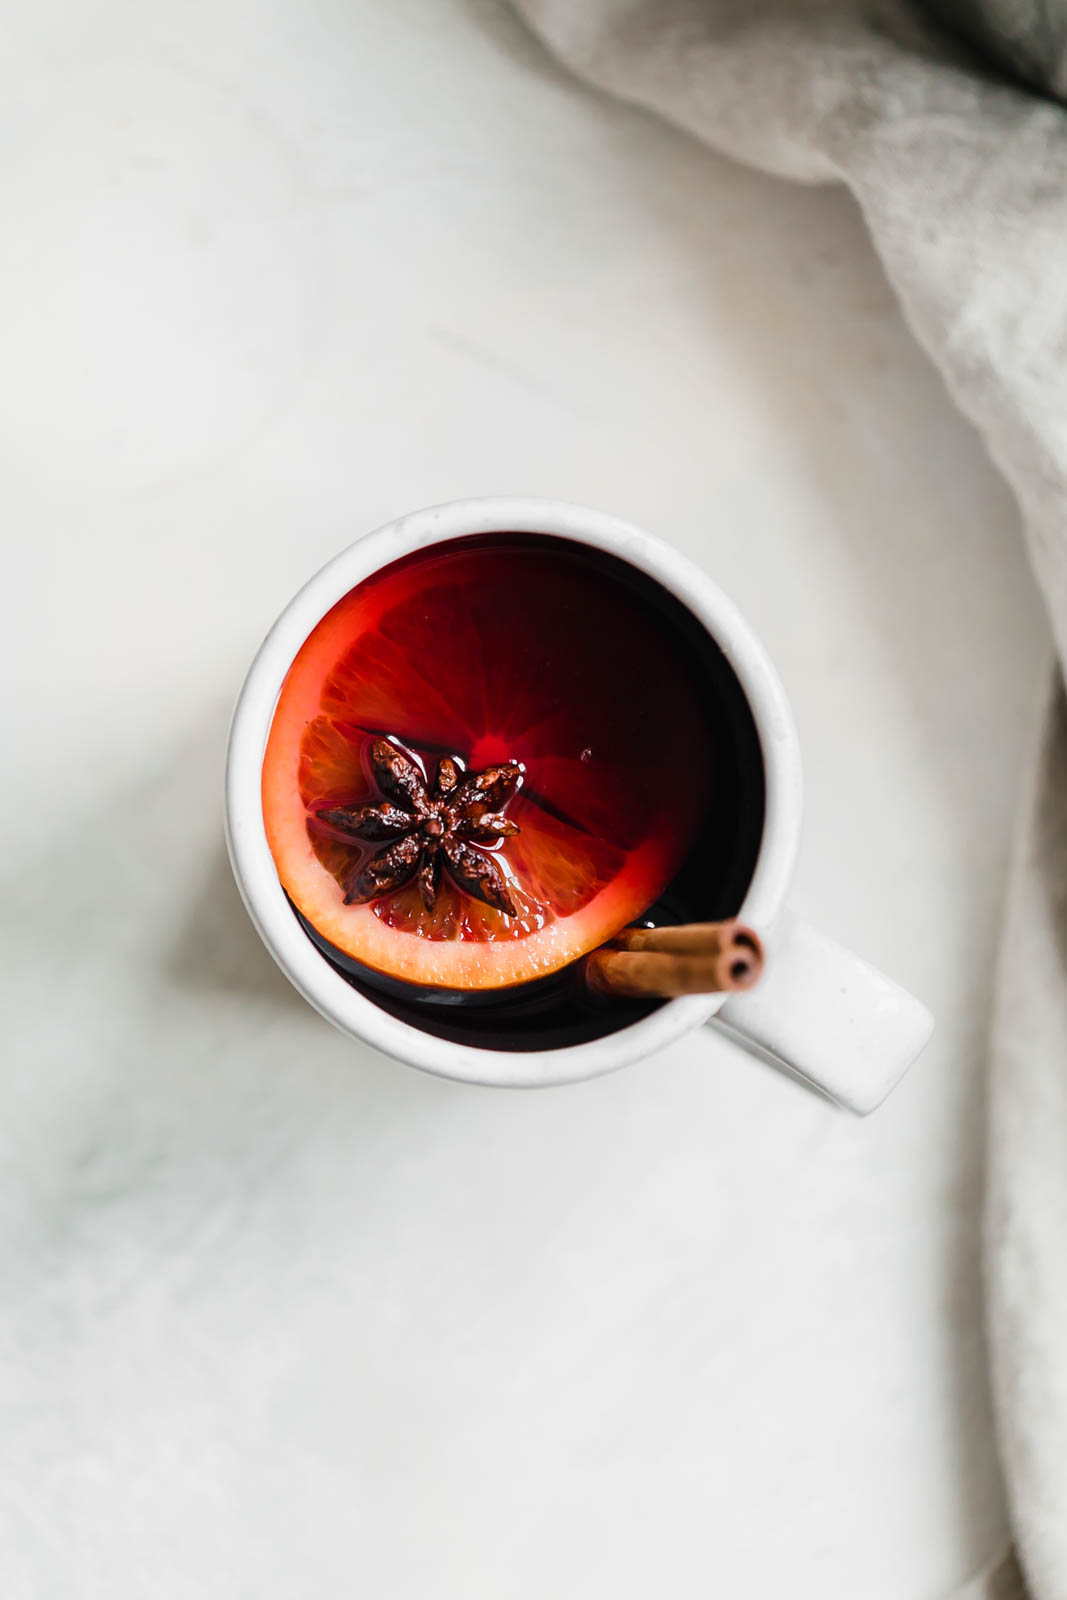 A super easy Mulled Wine that takes 5 minutes to put together. Perfect for your next holiday party or family gathering!